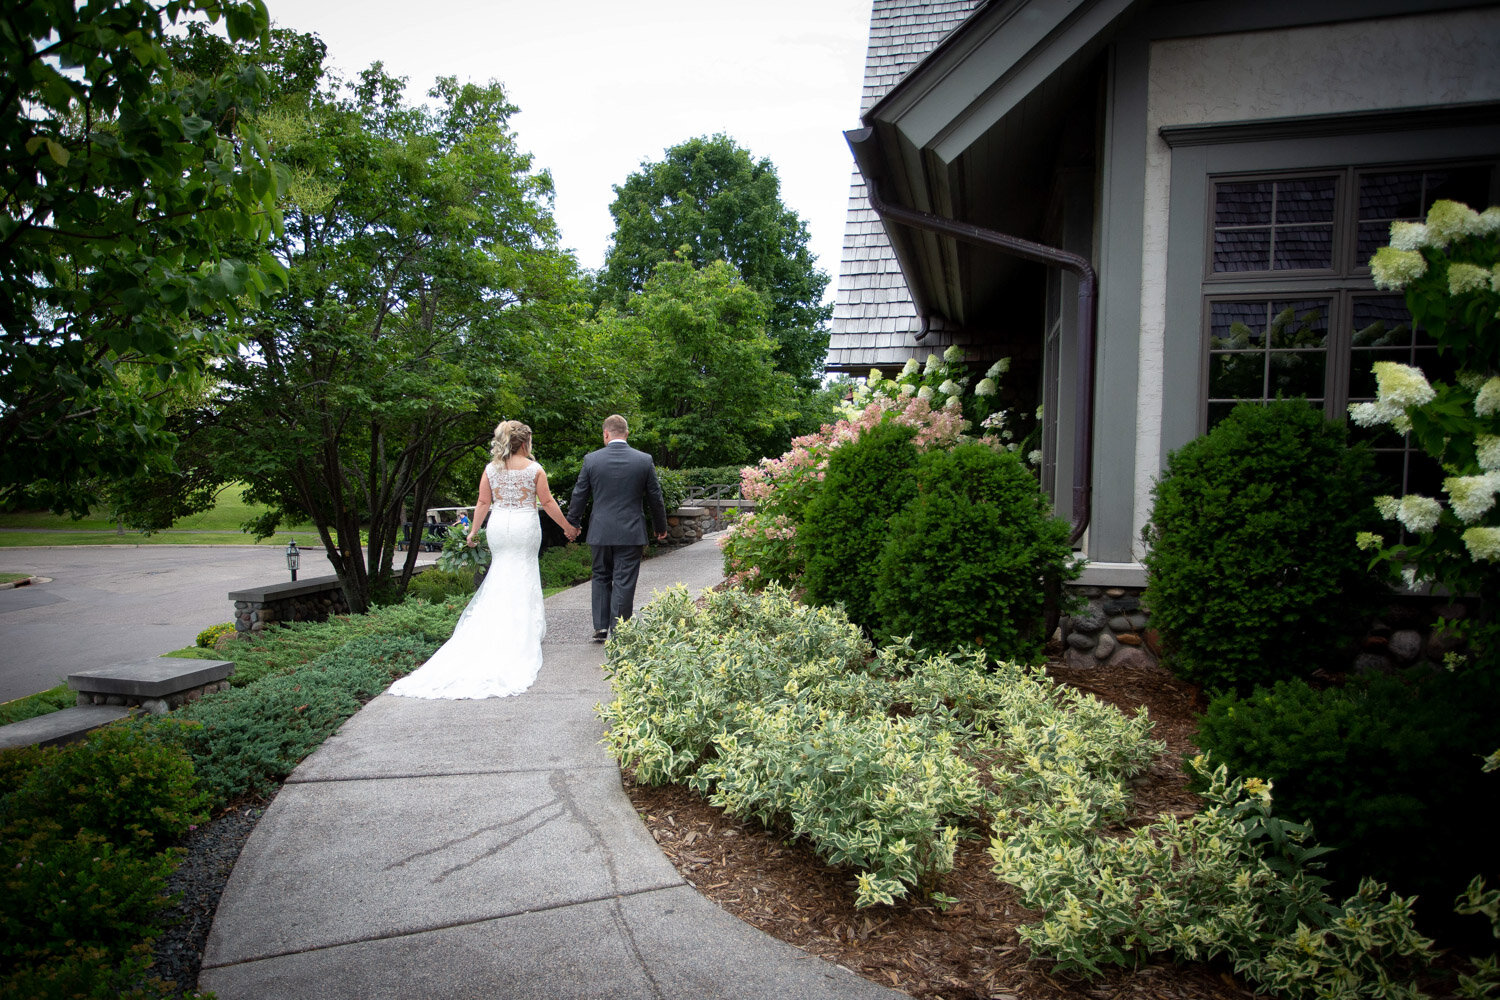 10-rush-creek-golf-course-bride-groom-portrait-outside-path-mahonenphotography-mn-wedding-photographer.jpg